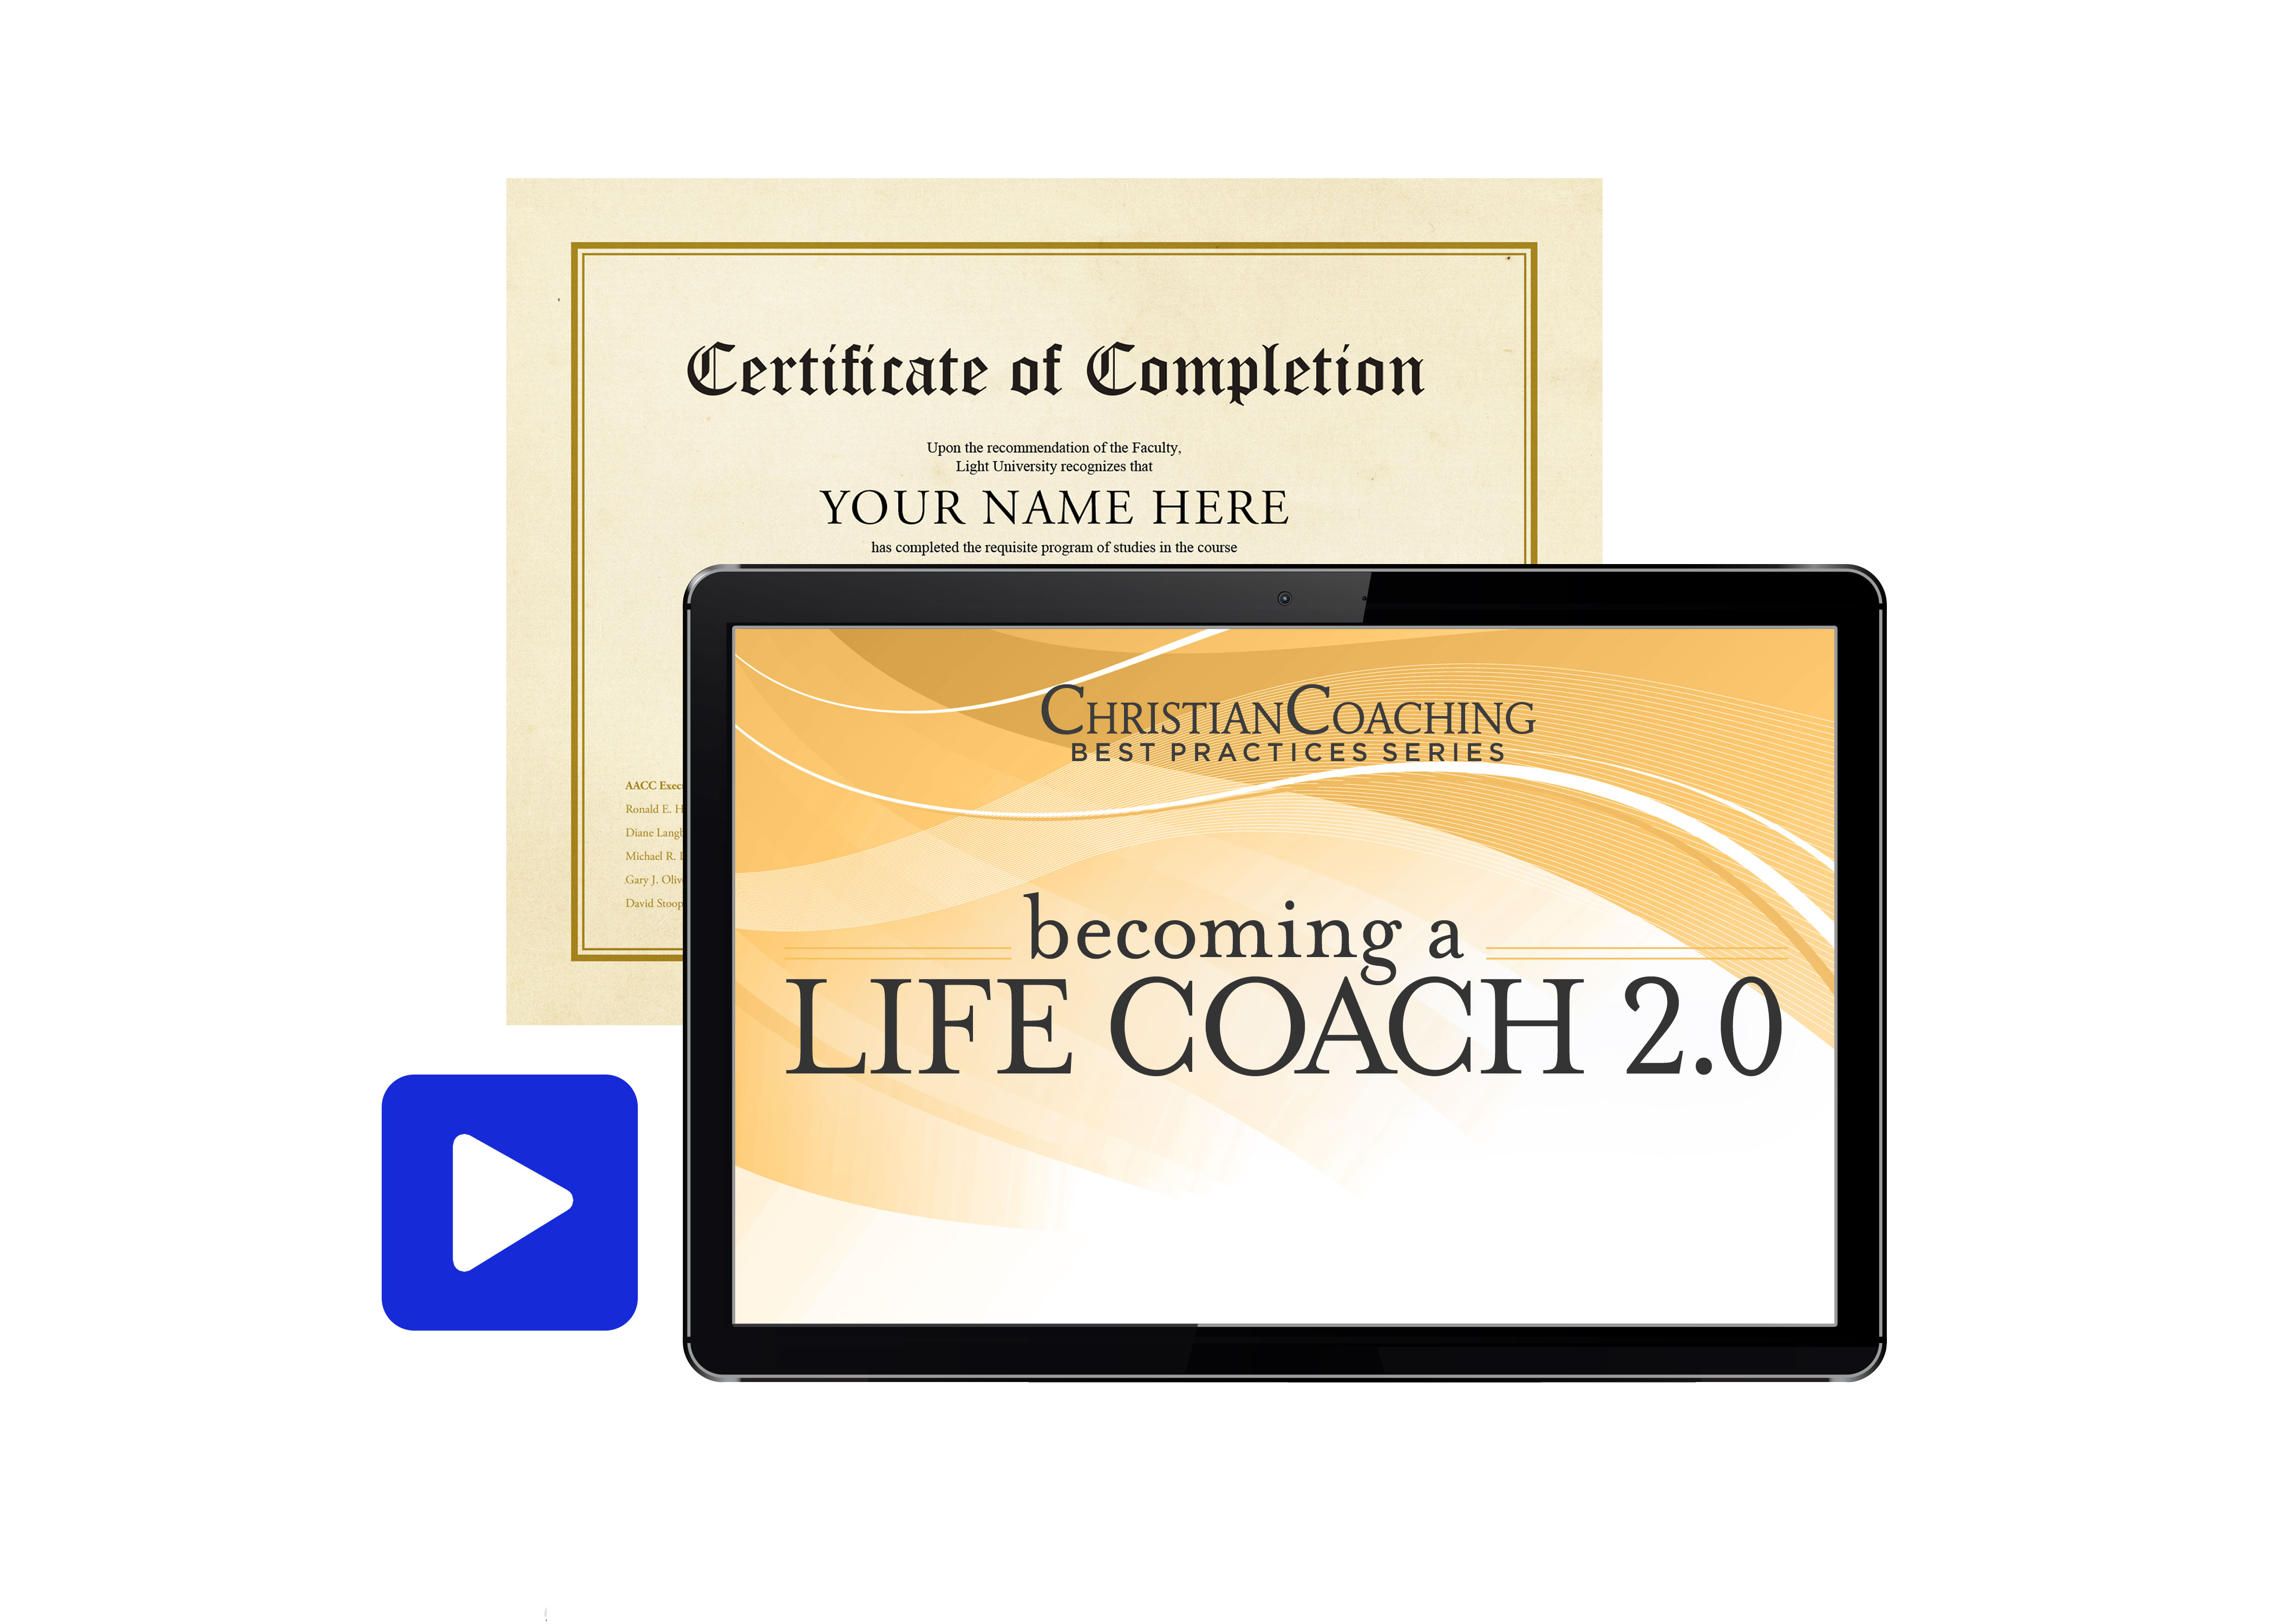 Becoming a Life Coach 2.0